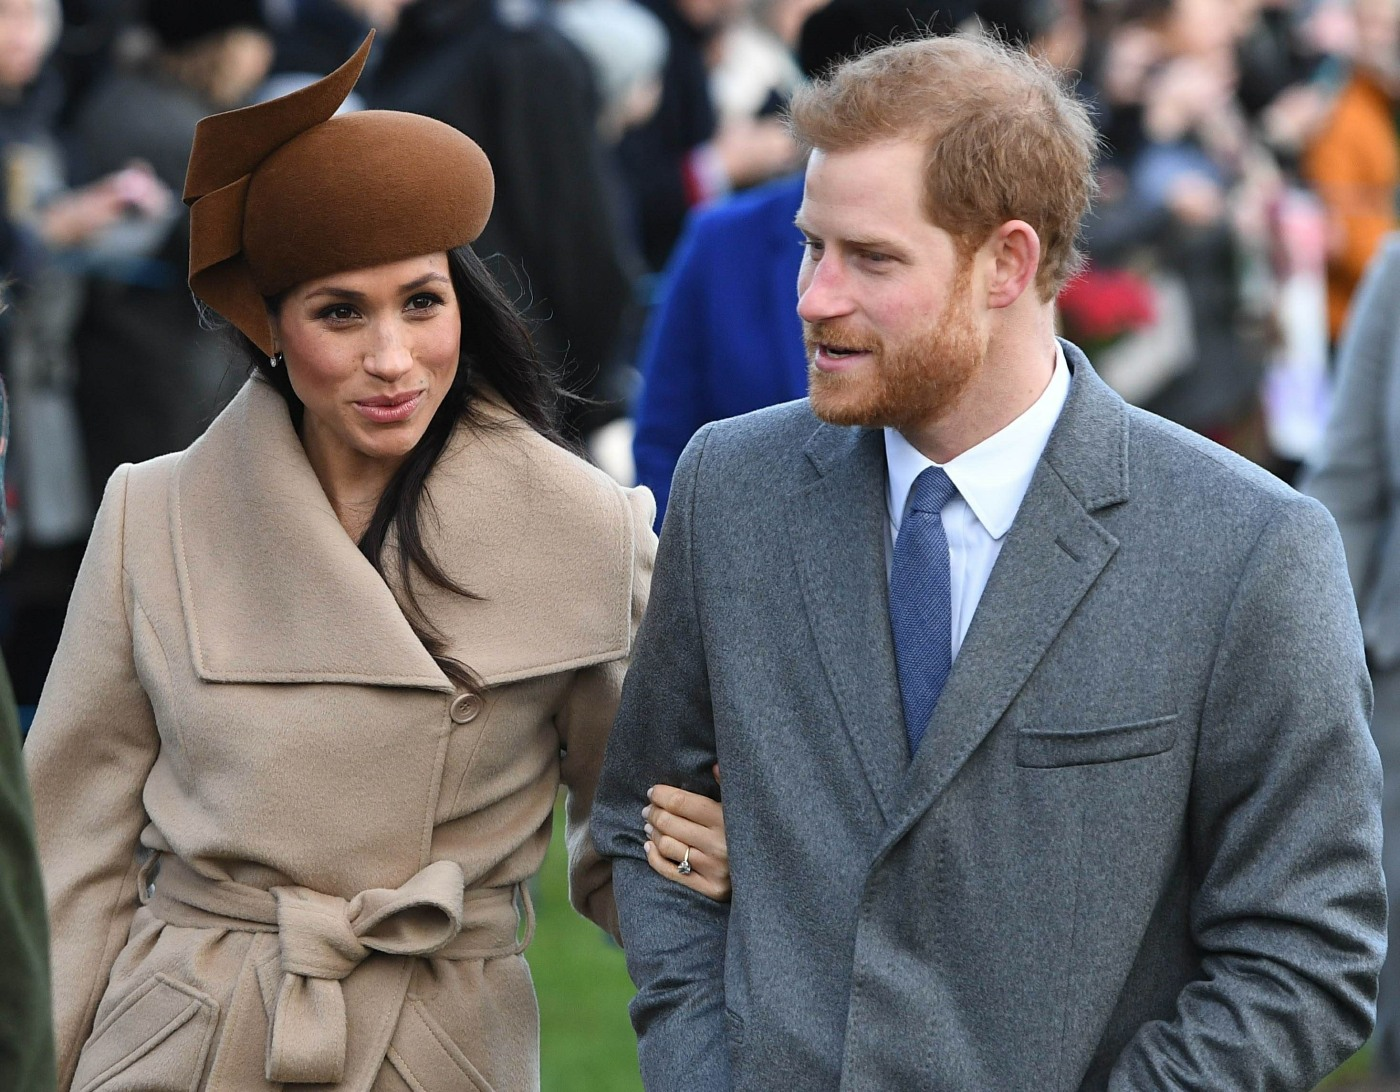 The royal family attends a Christmas Day church service in Britain